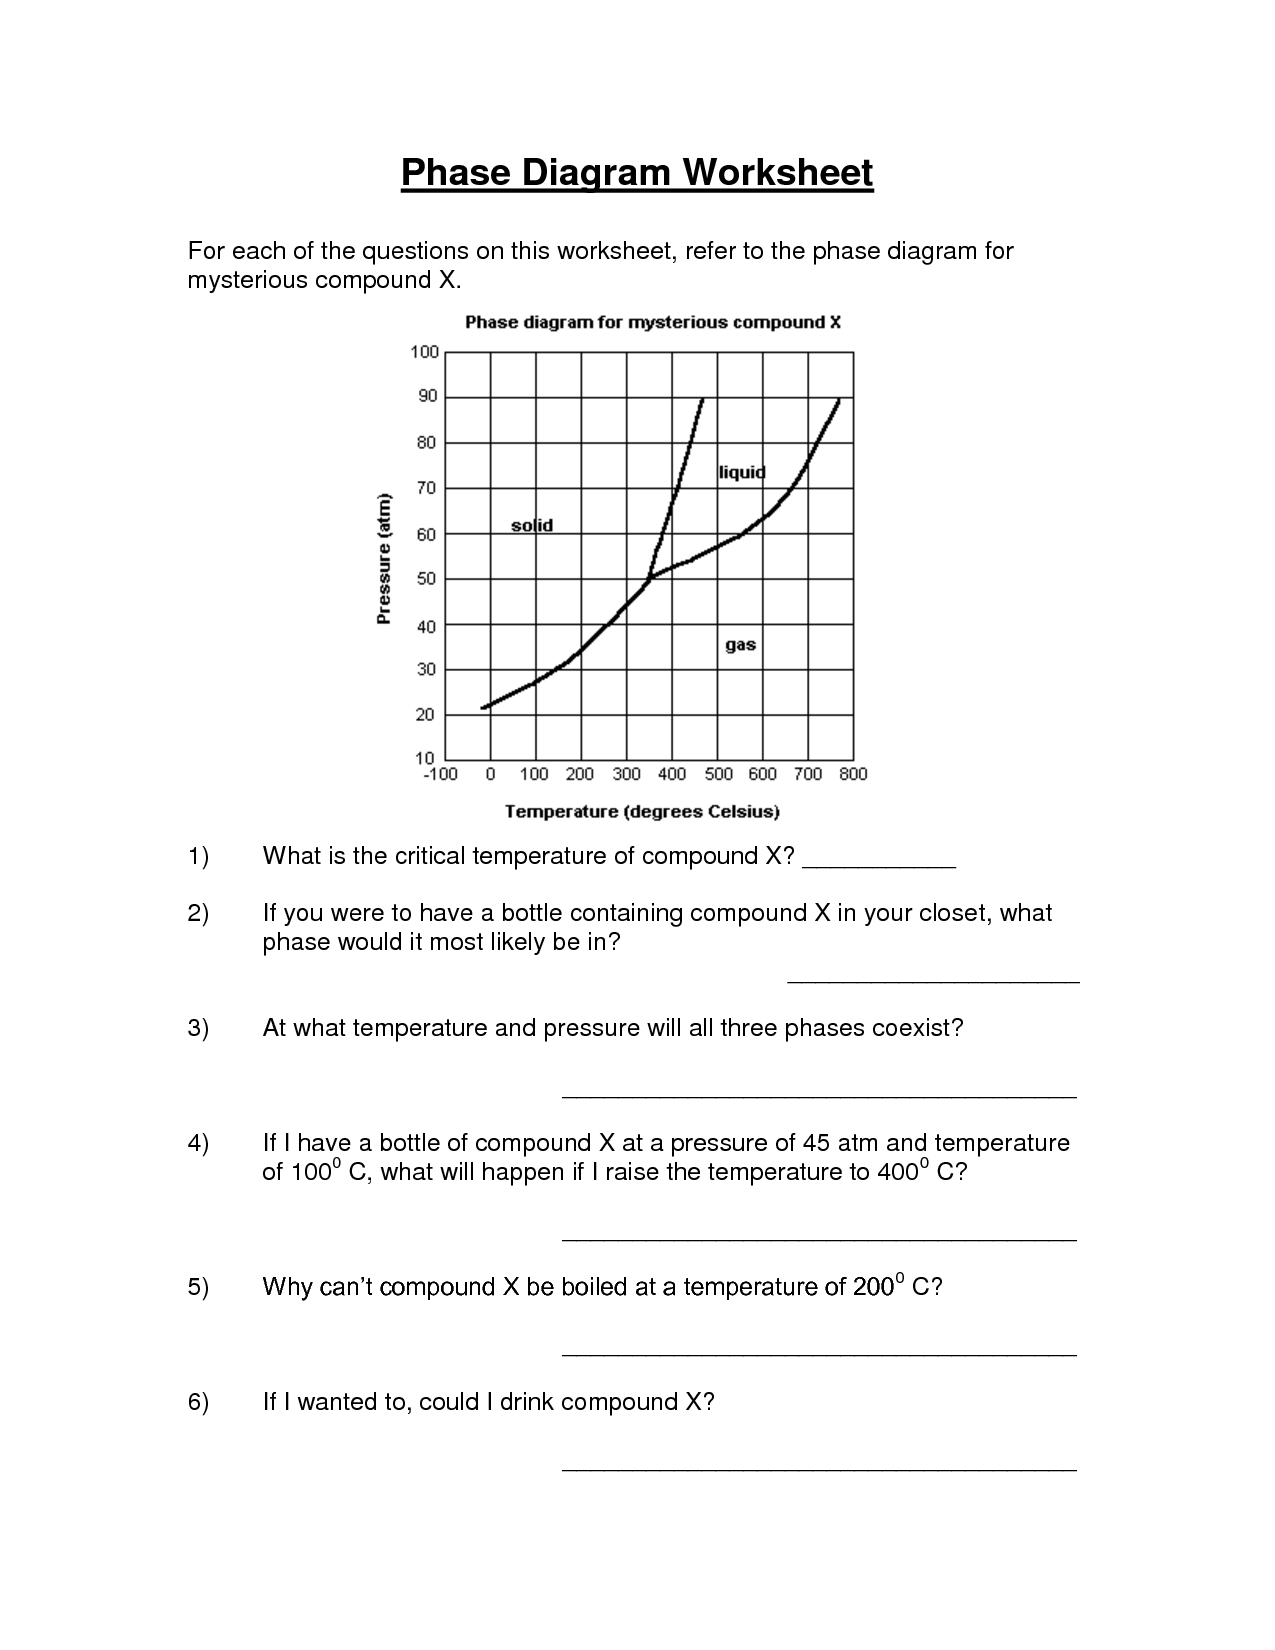 Phase Change Worksheet Answers